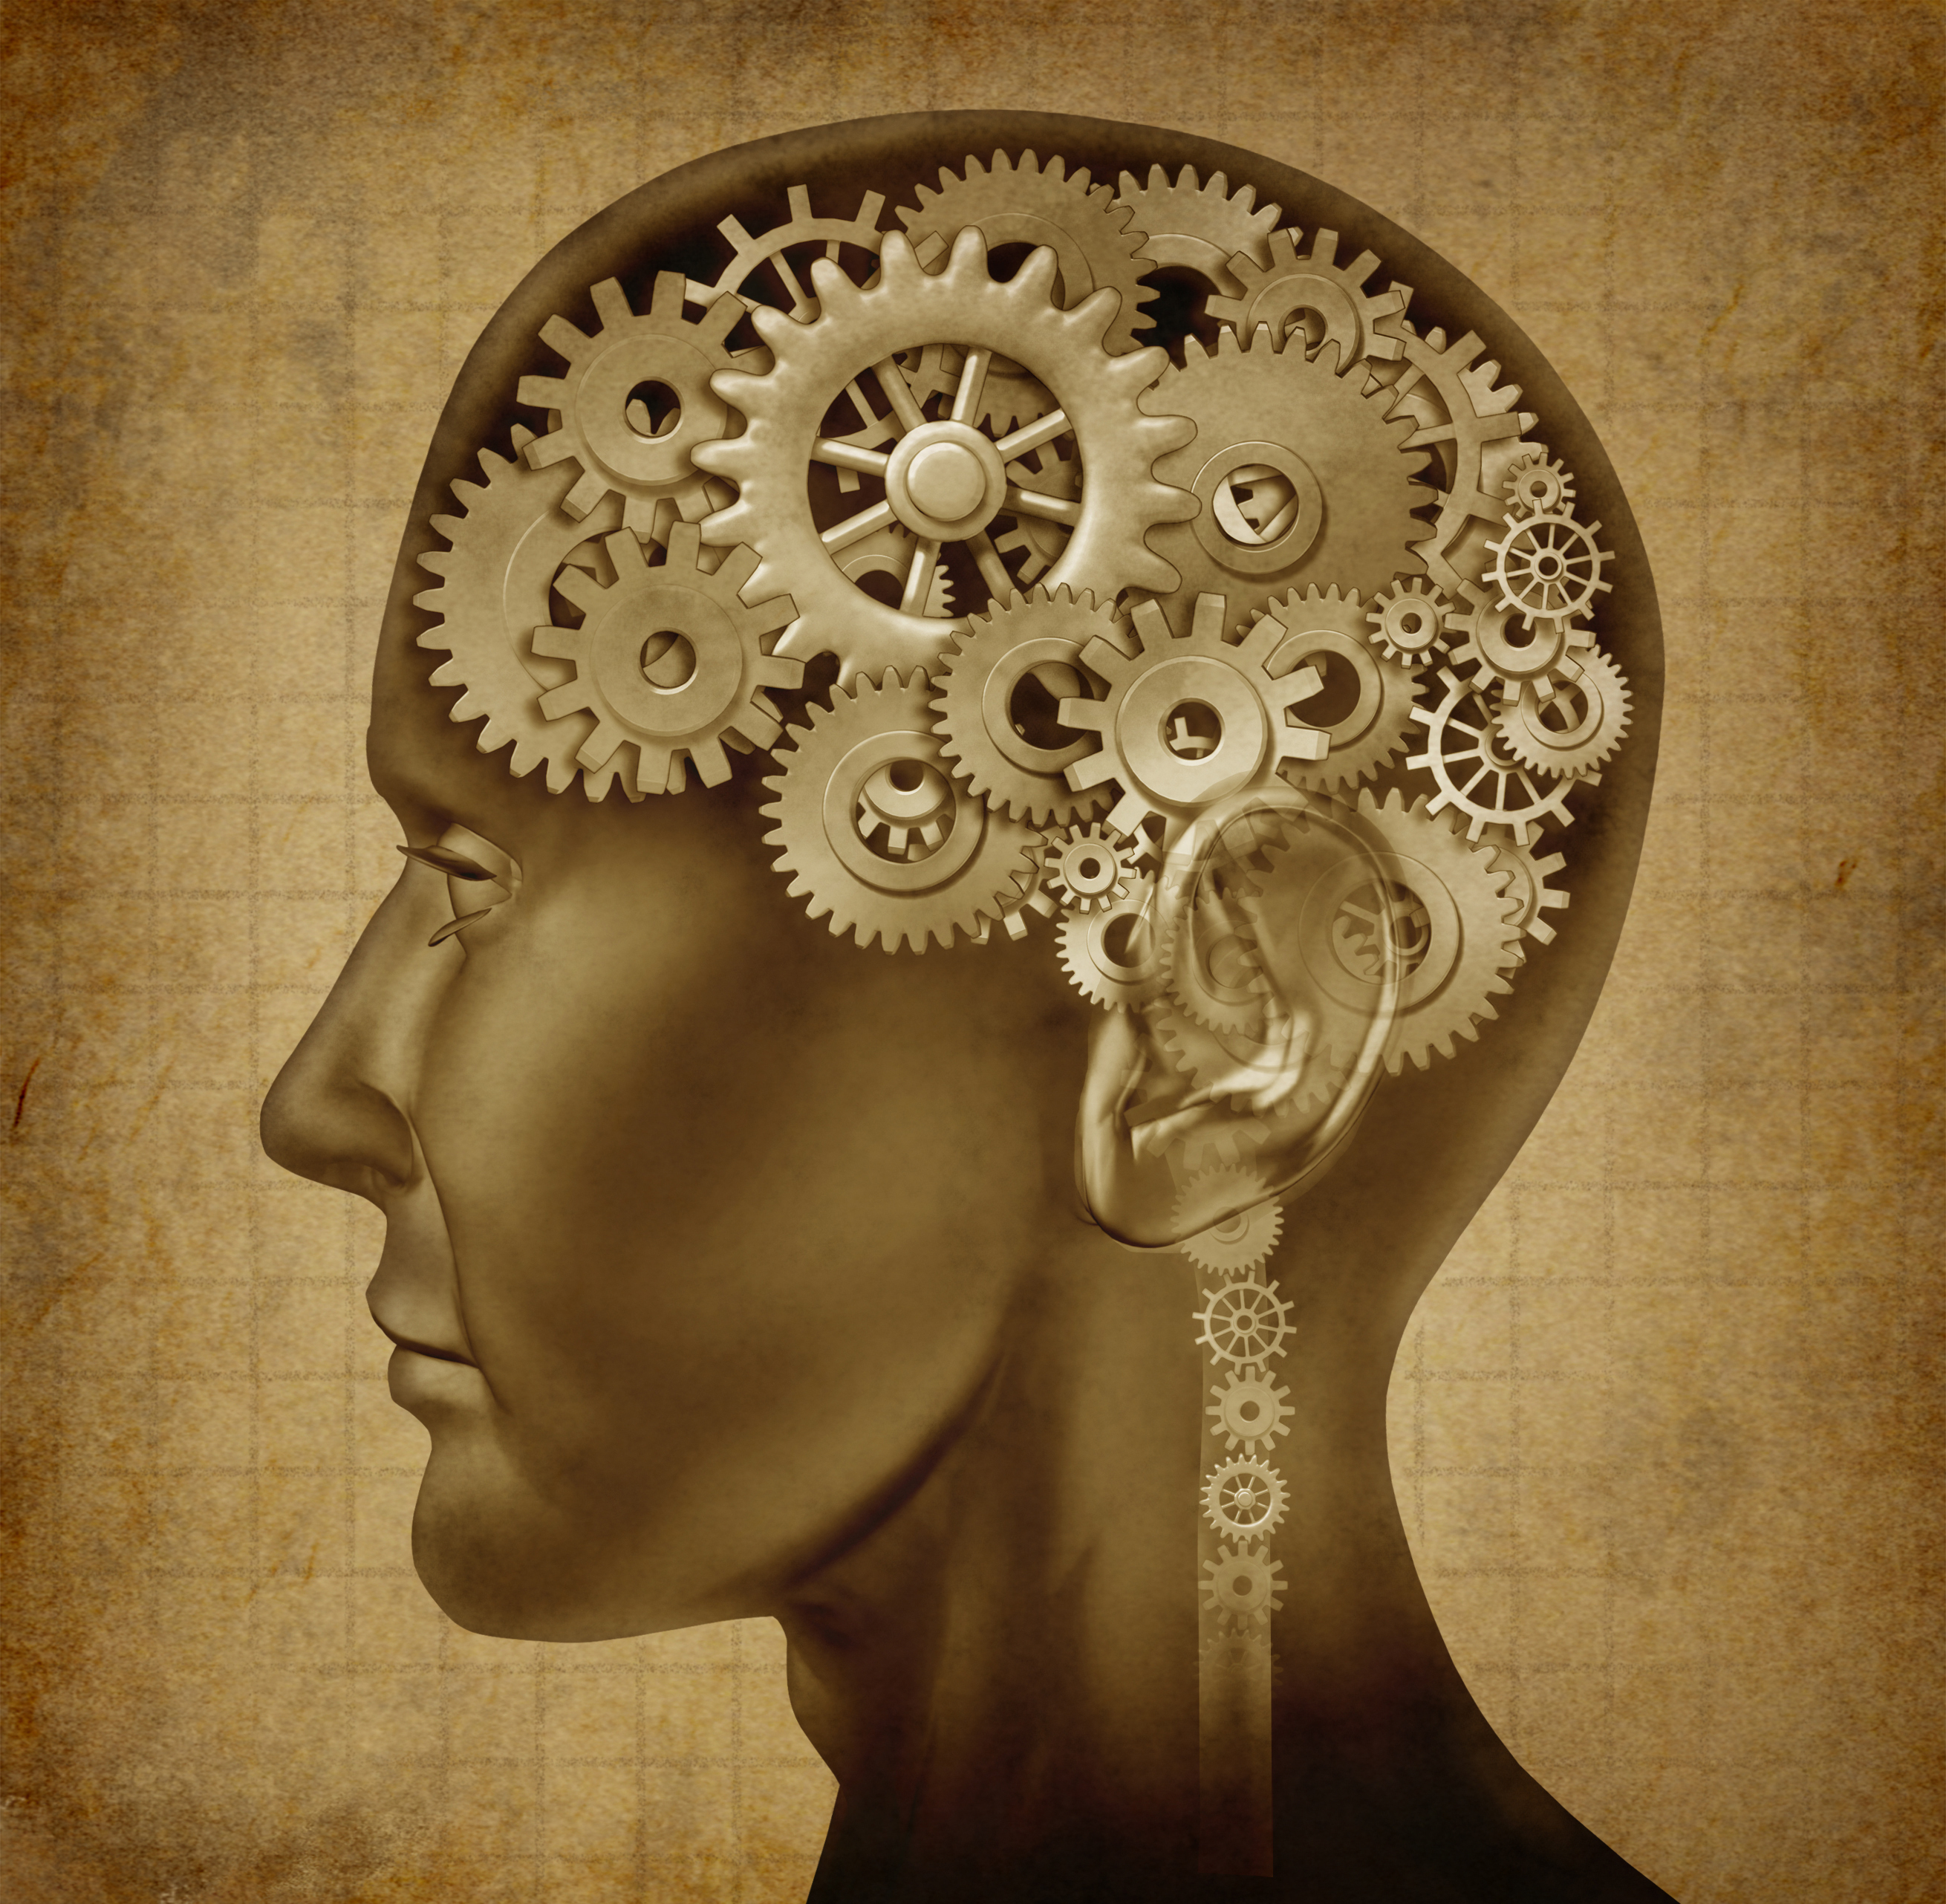 dicpiction of 2 faces with brain like cog wheels and gears